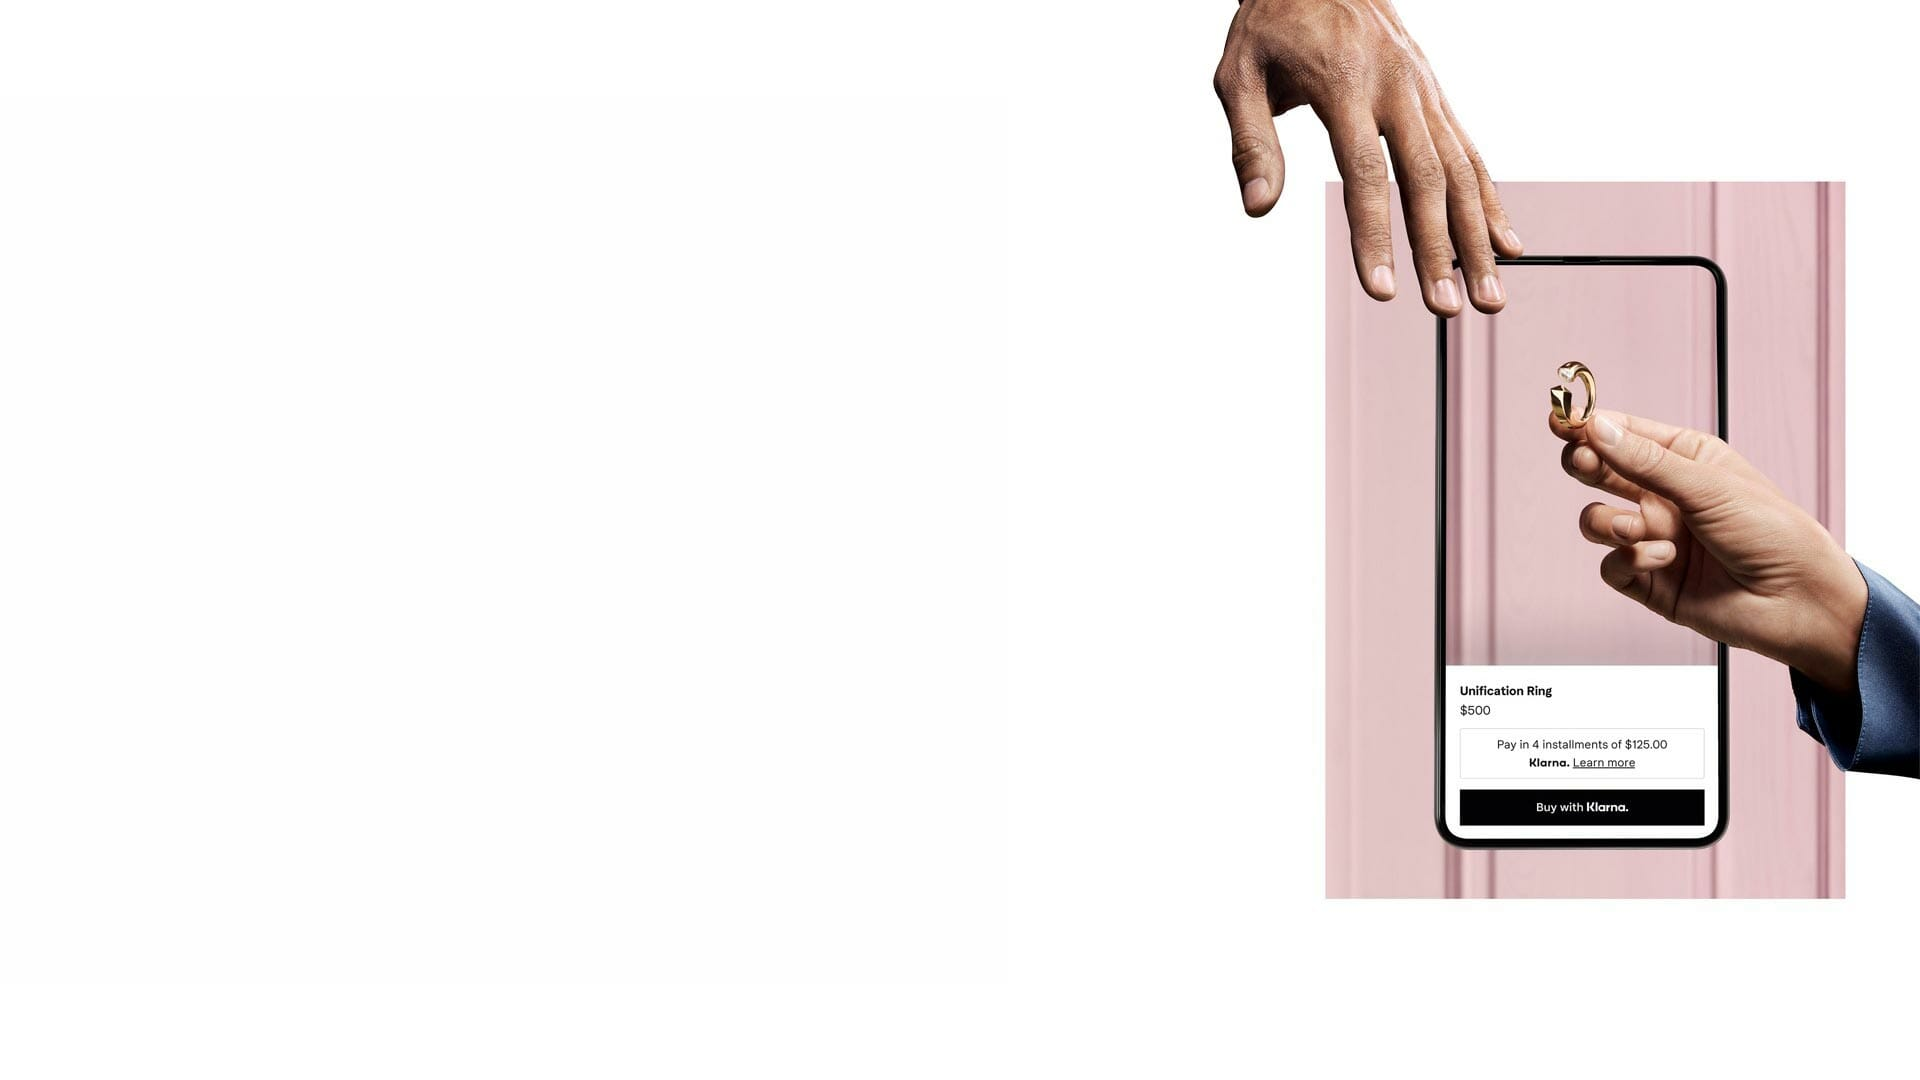 Pink background giving ring and mobile image.